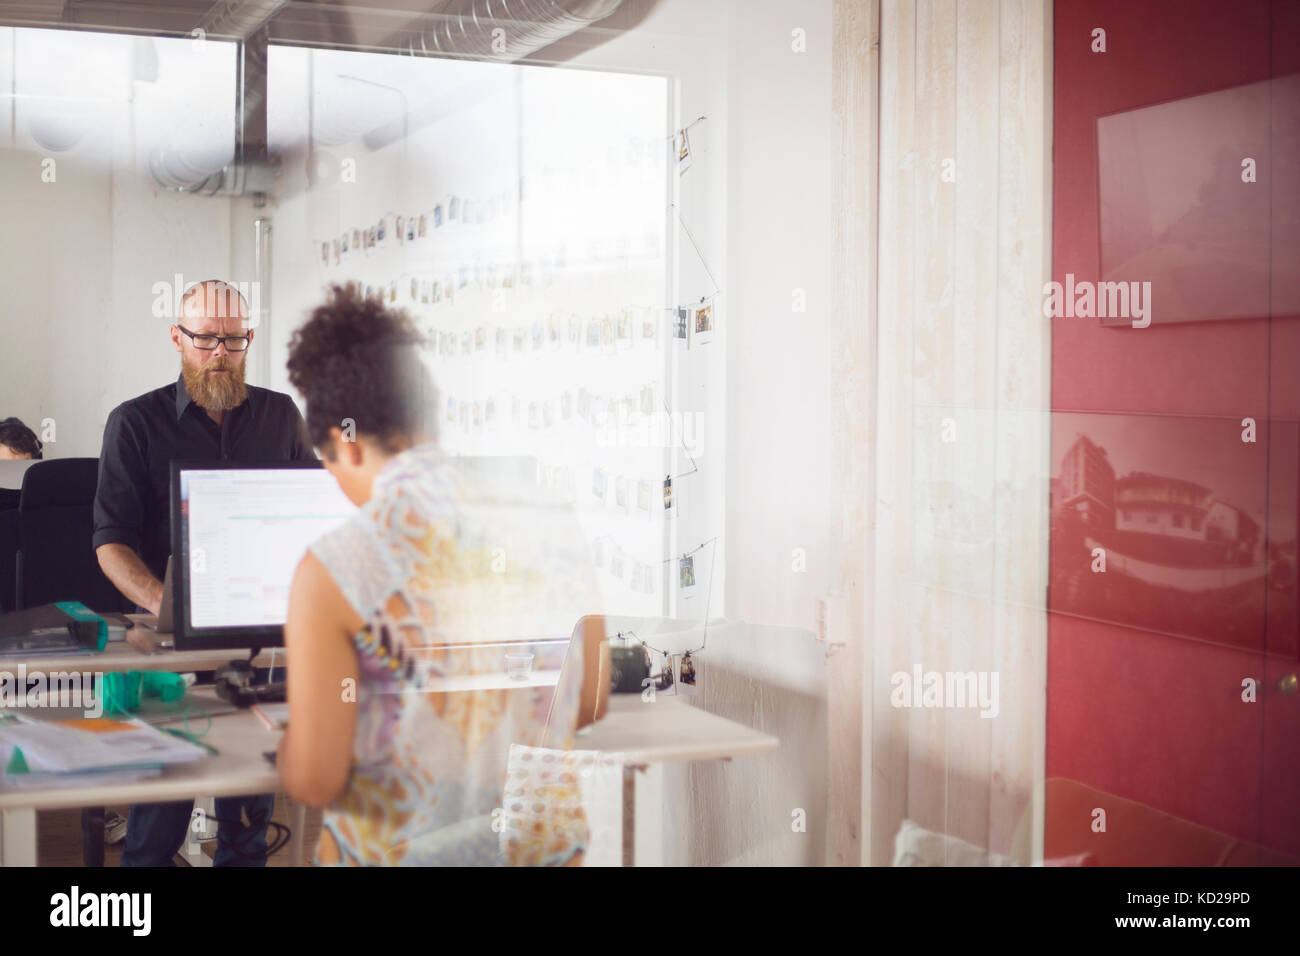 Man and Woman working in office Photo Stock